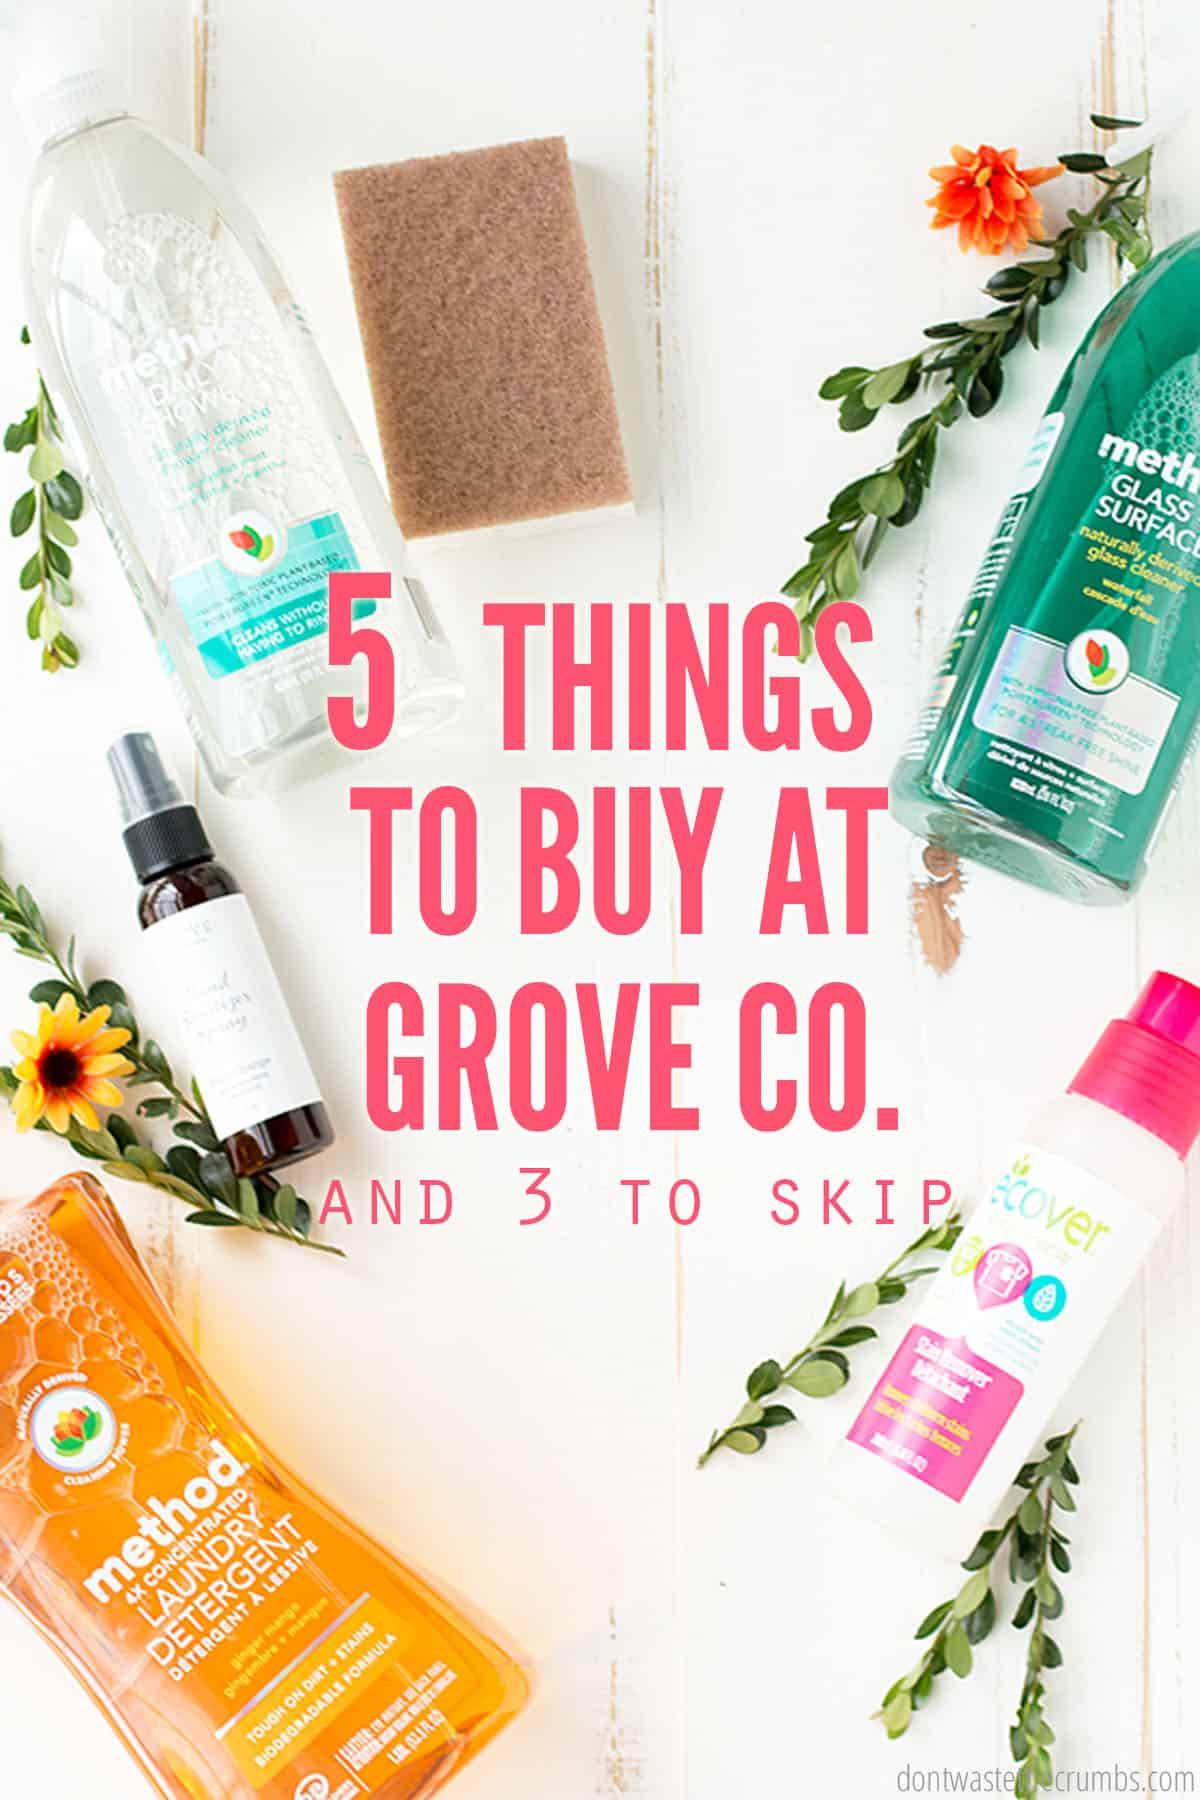 """Featured are 6 products that can be purchased from Grove Collaborative. Glass cleaner, laundry detergent, all-purpose cleaner, a walnut sponge and a sanitizing spray! The text overlay reads, """"5 Things to Buy at Grove Co. And 3 to skip."""""""